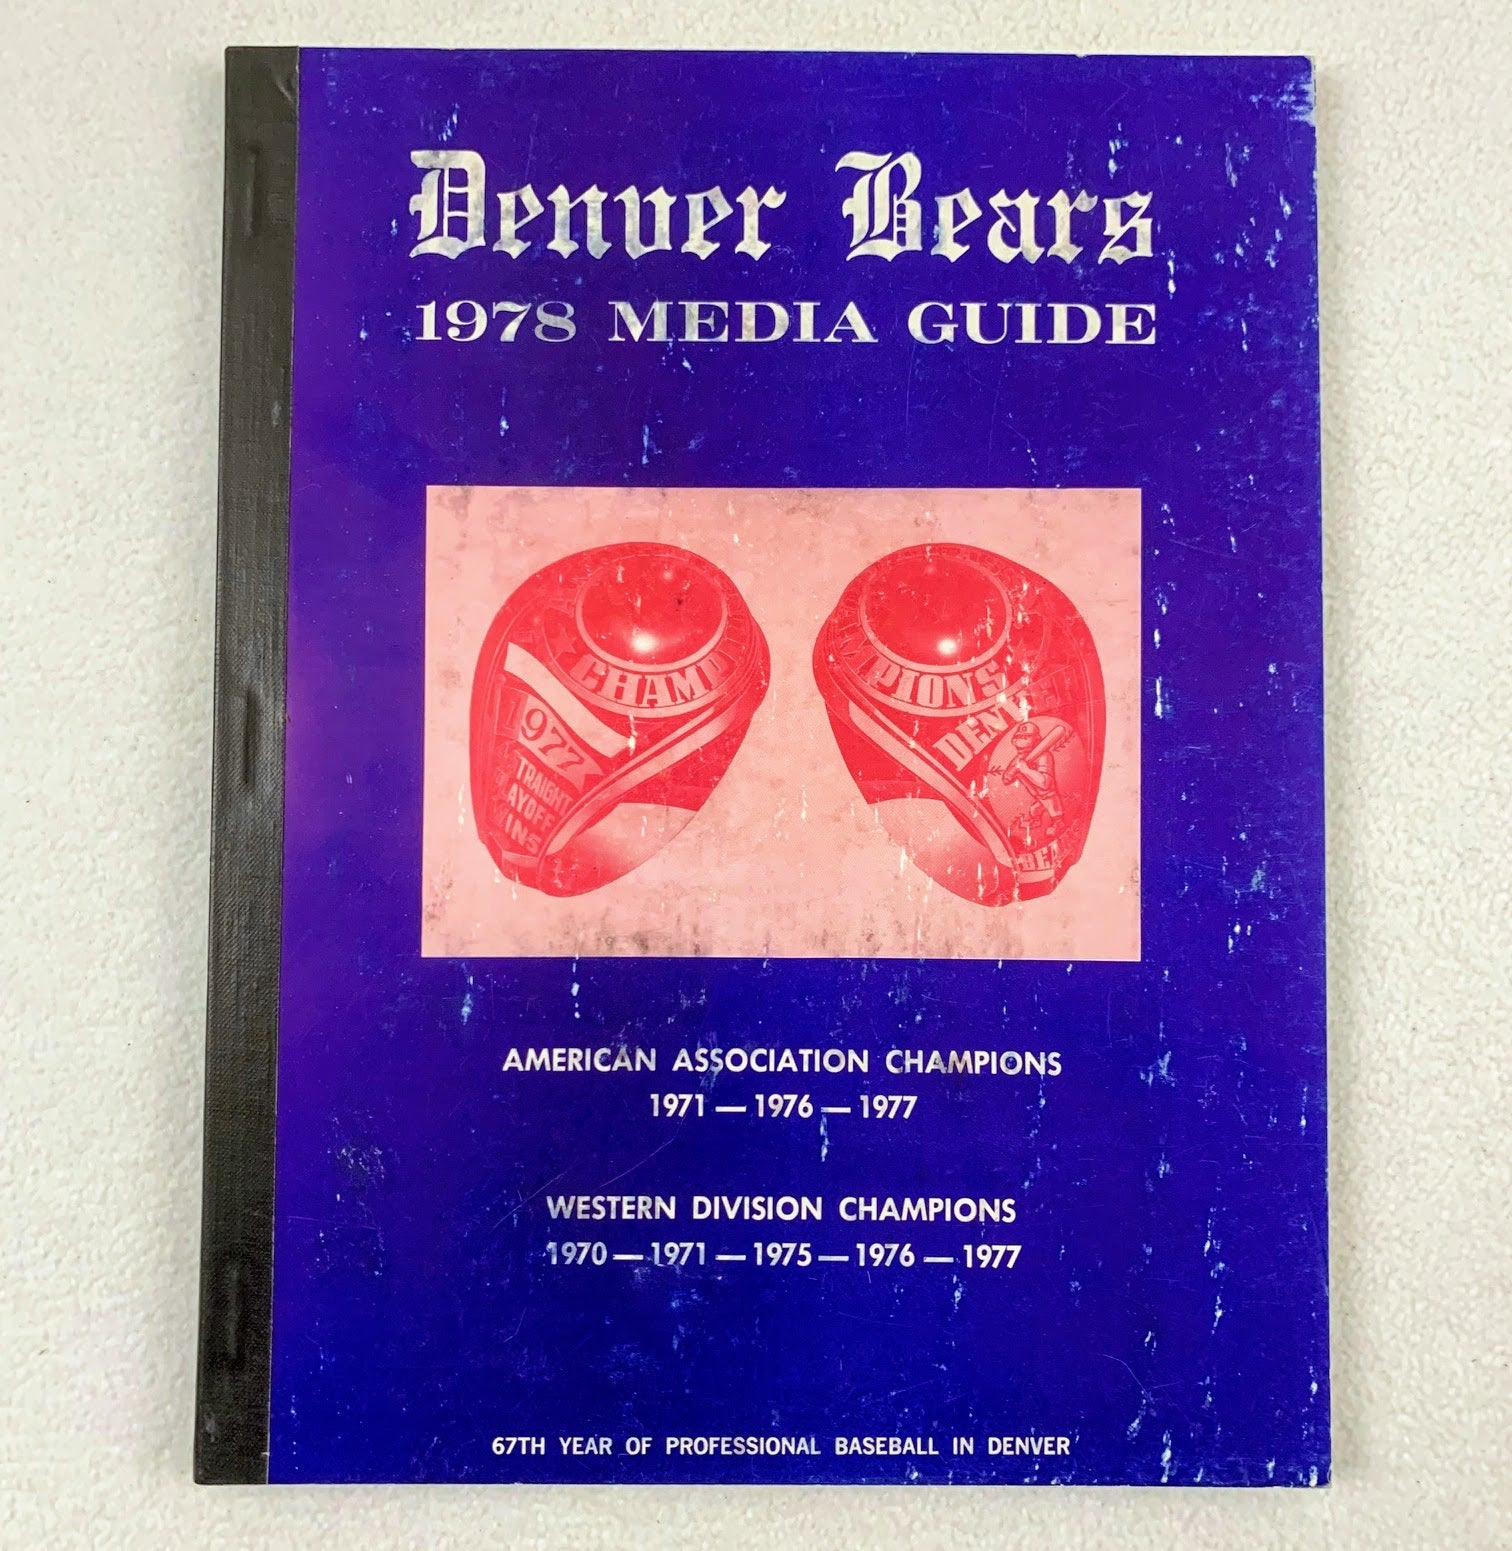 1978 Denver Bears Media Guide (Montreal Expos AAA)